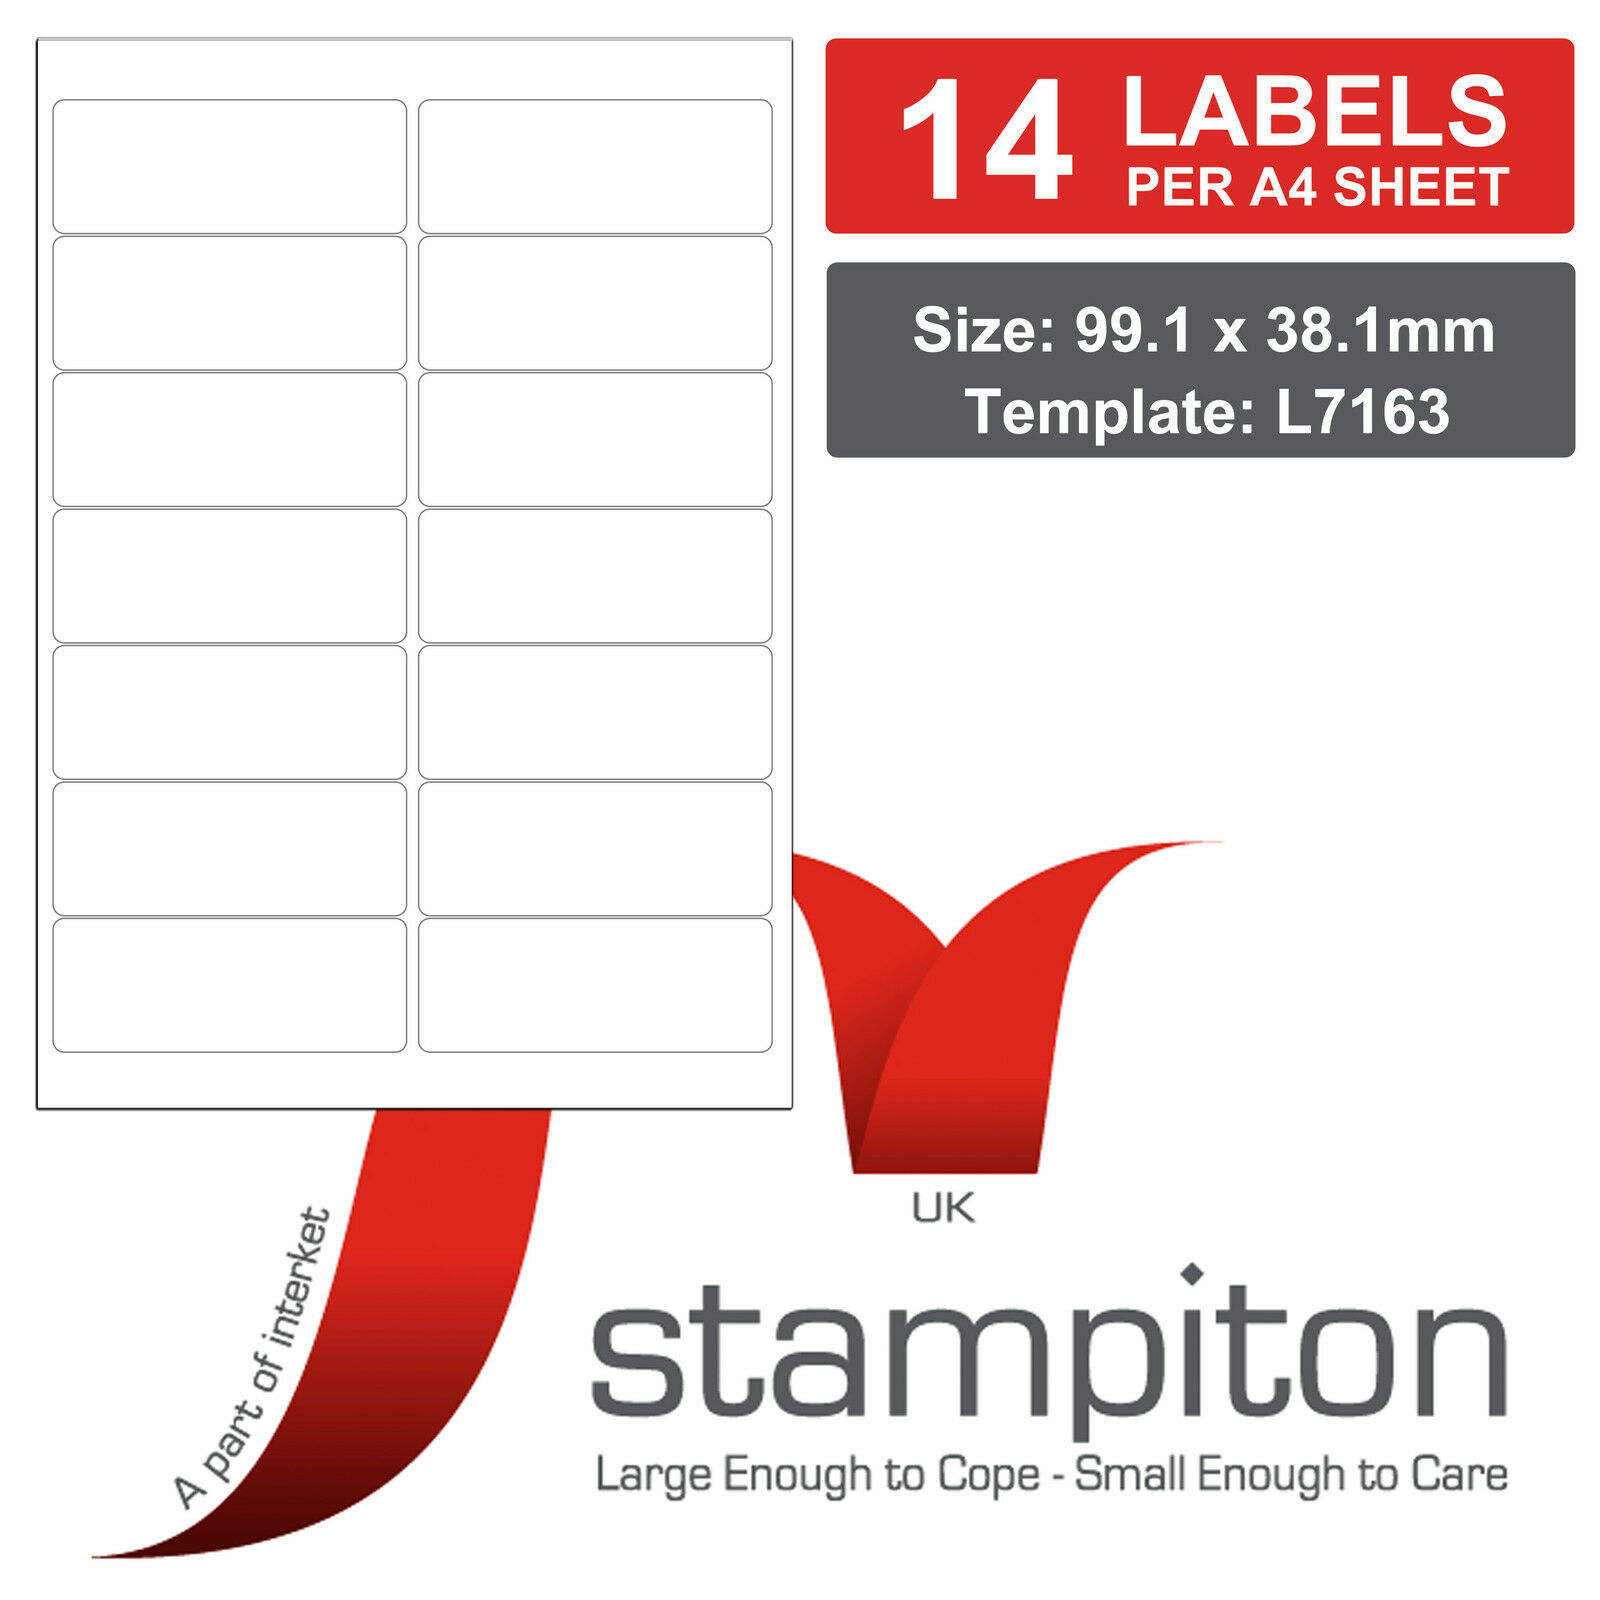 Fisher clark address labels 100 a4 sheets 14 per sheet for Word label template 16 per sheet a4